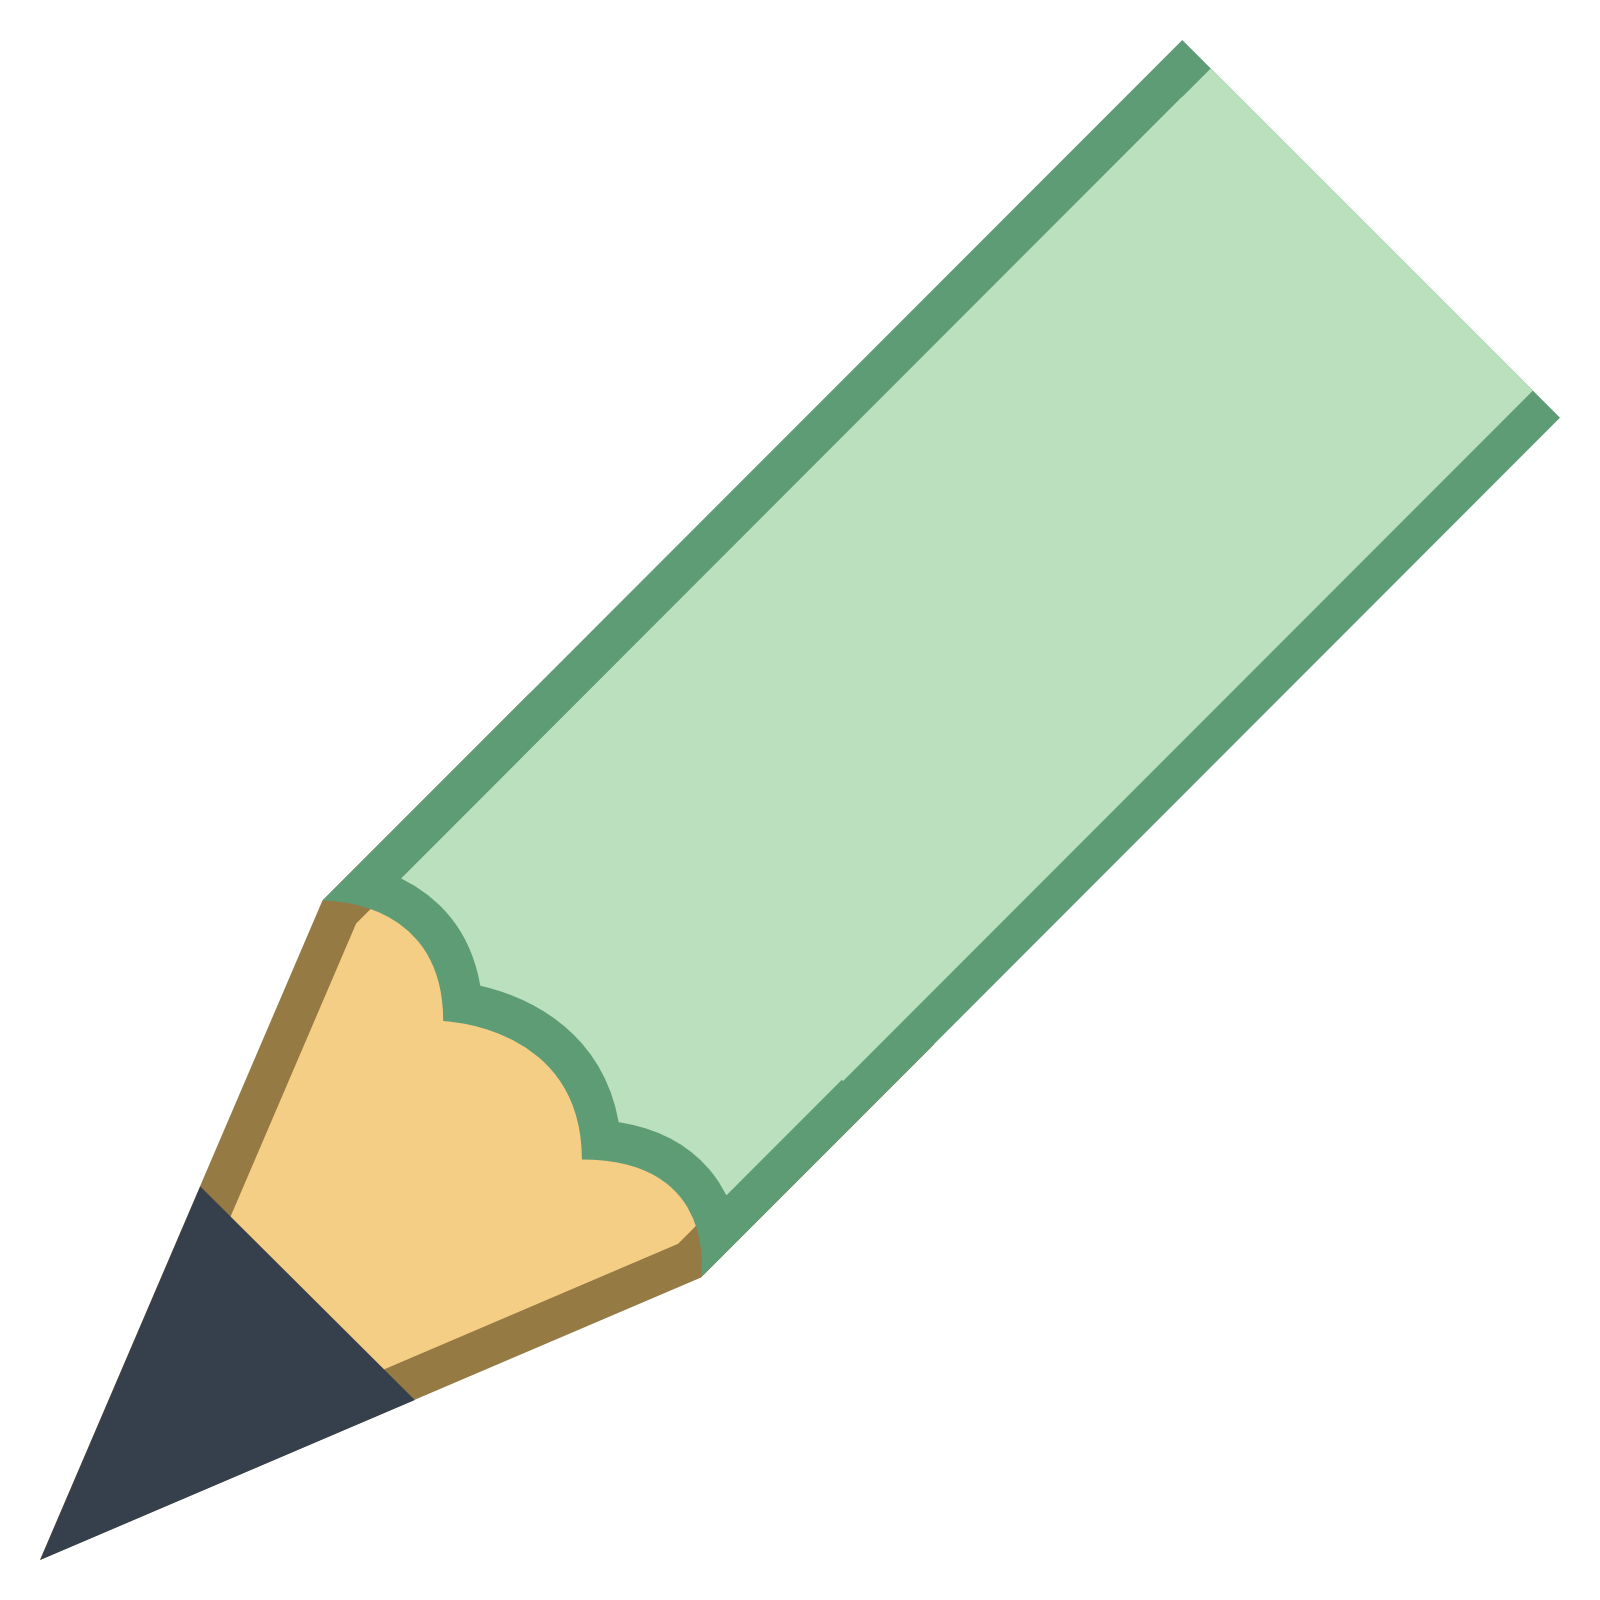 Tip Of Pencil PNG - 57075